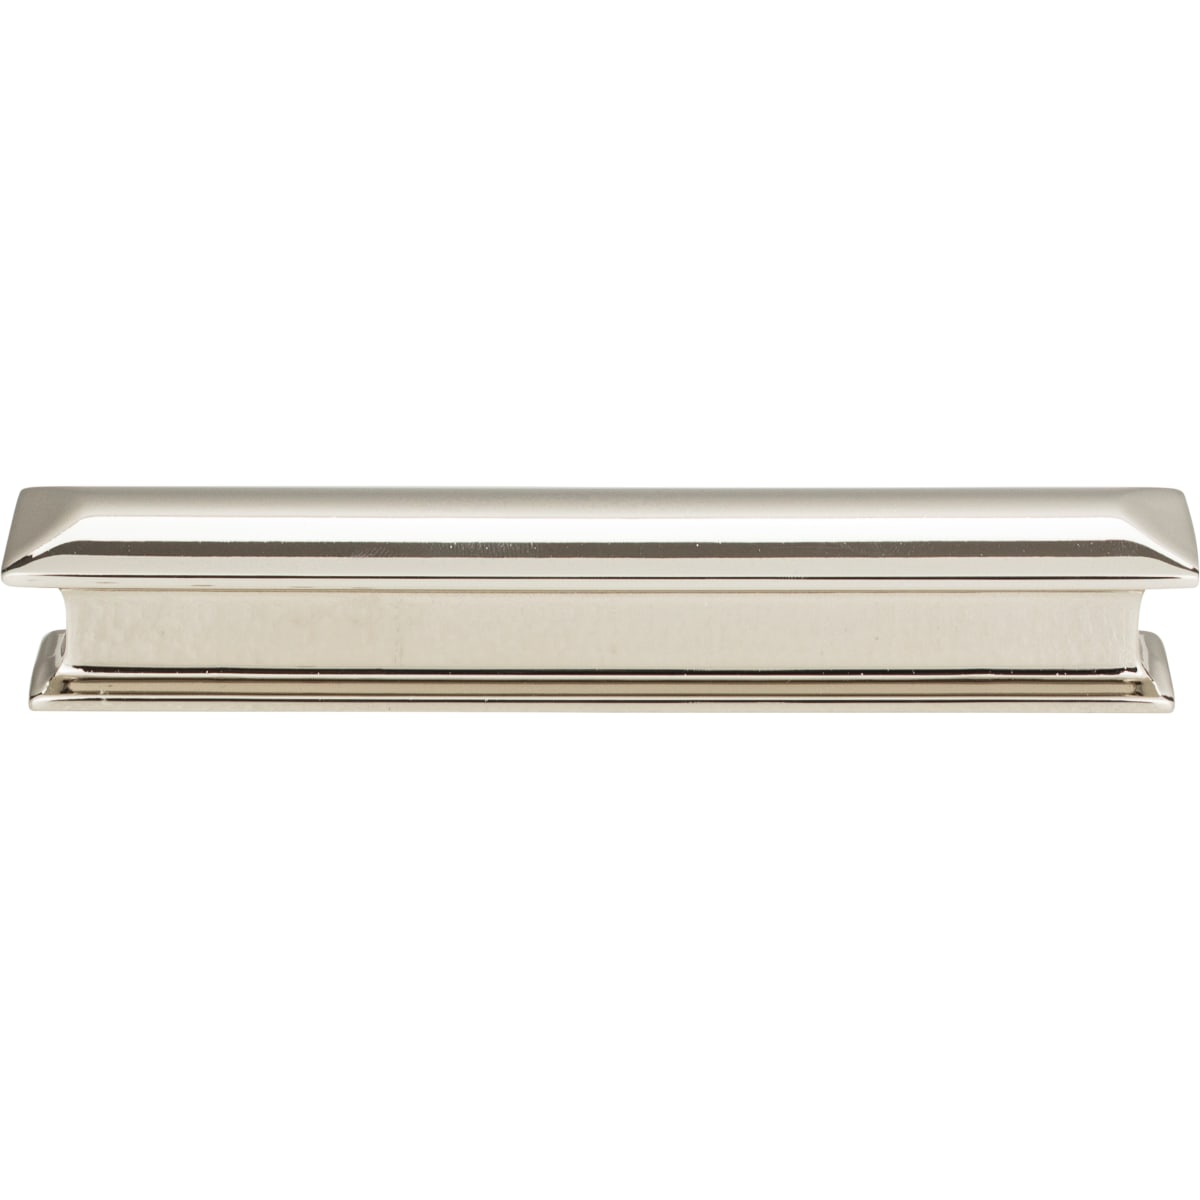 Atlas Alcott 5 Inch Center to Center Rectangular Cabinet Pull